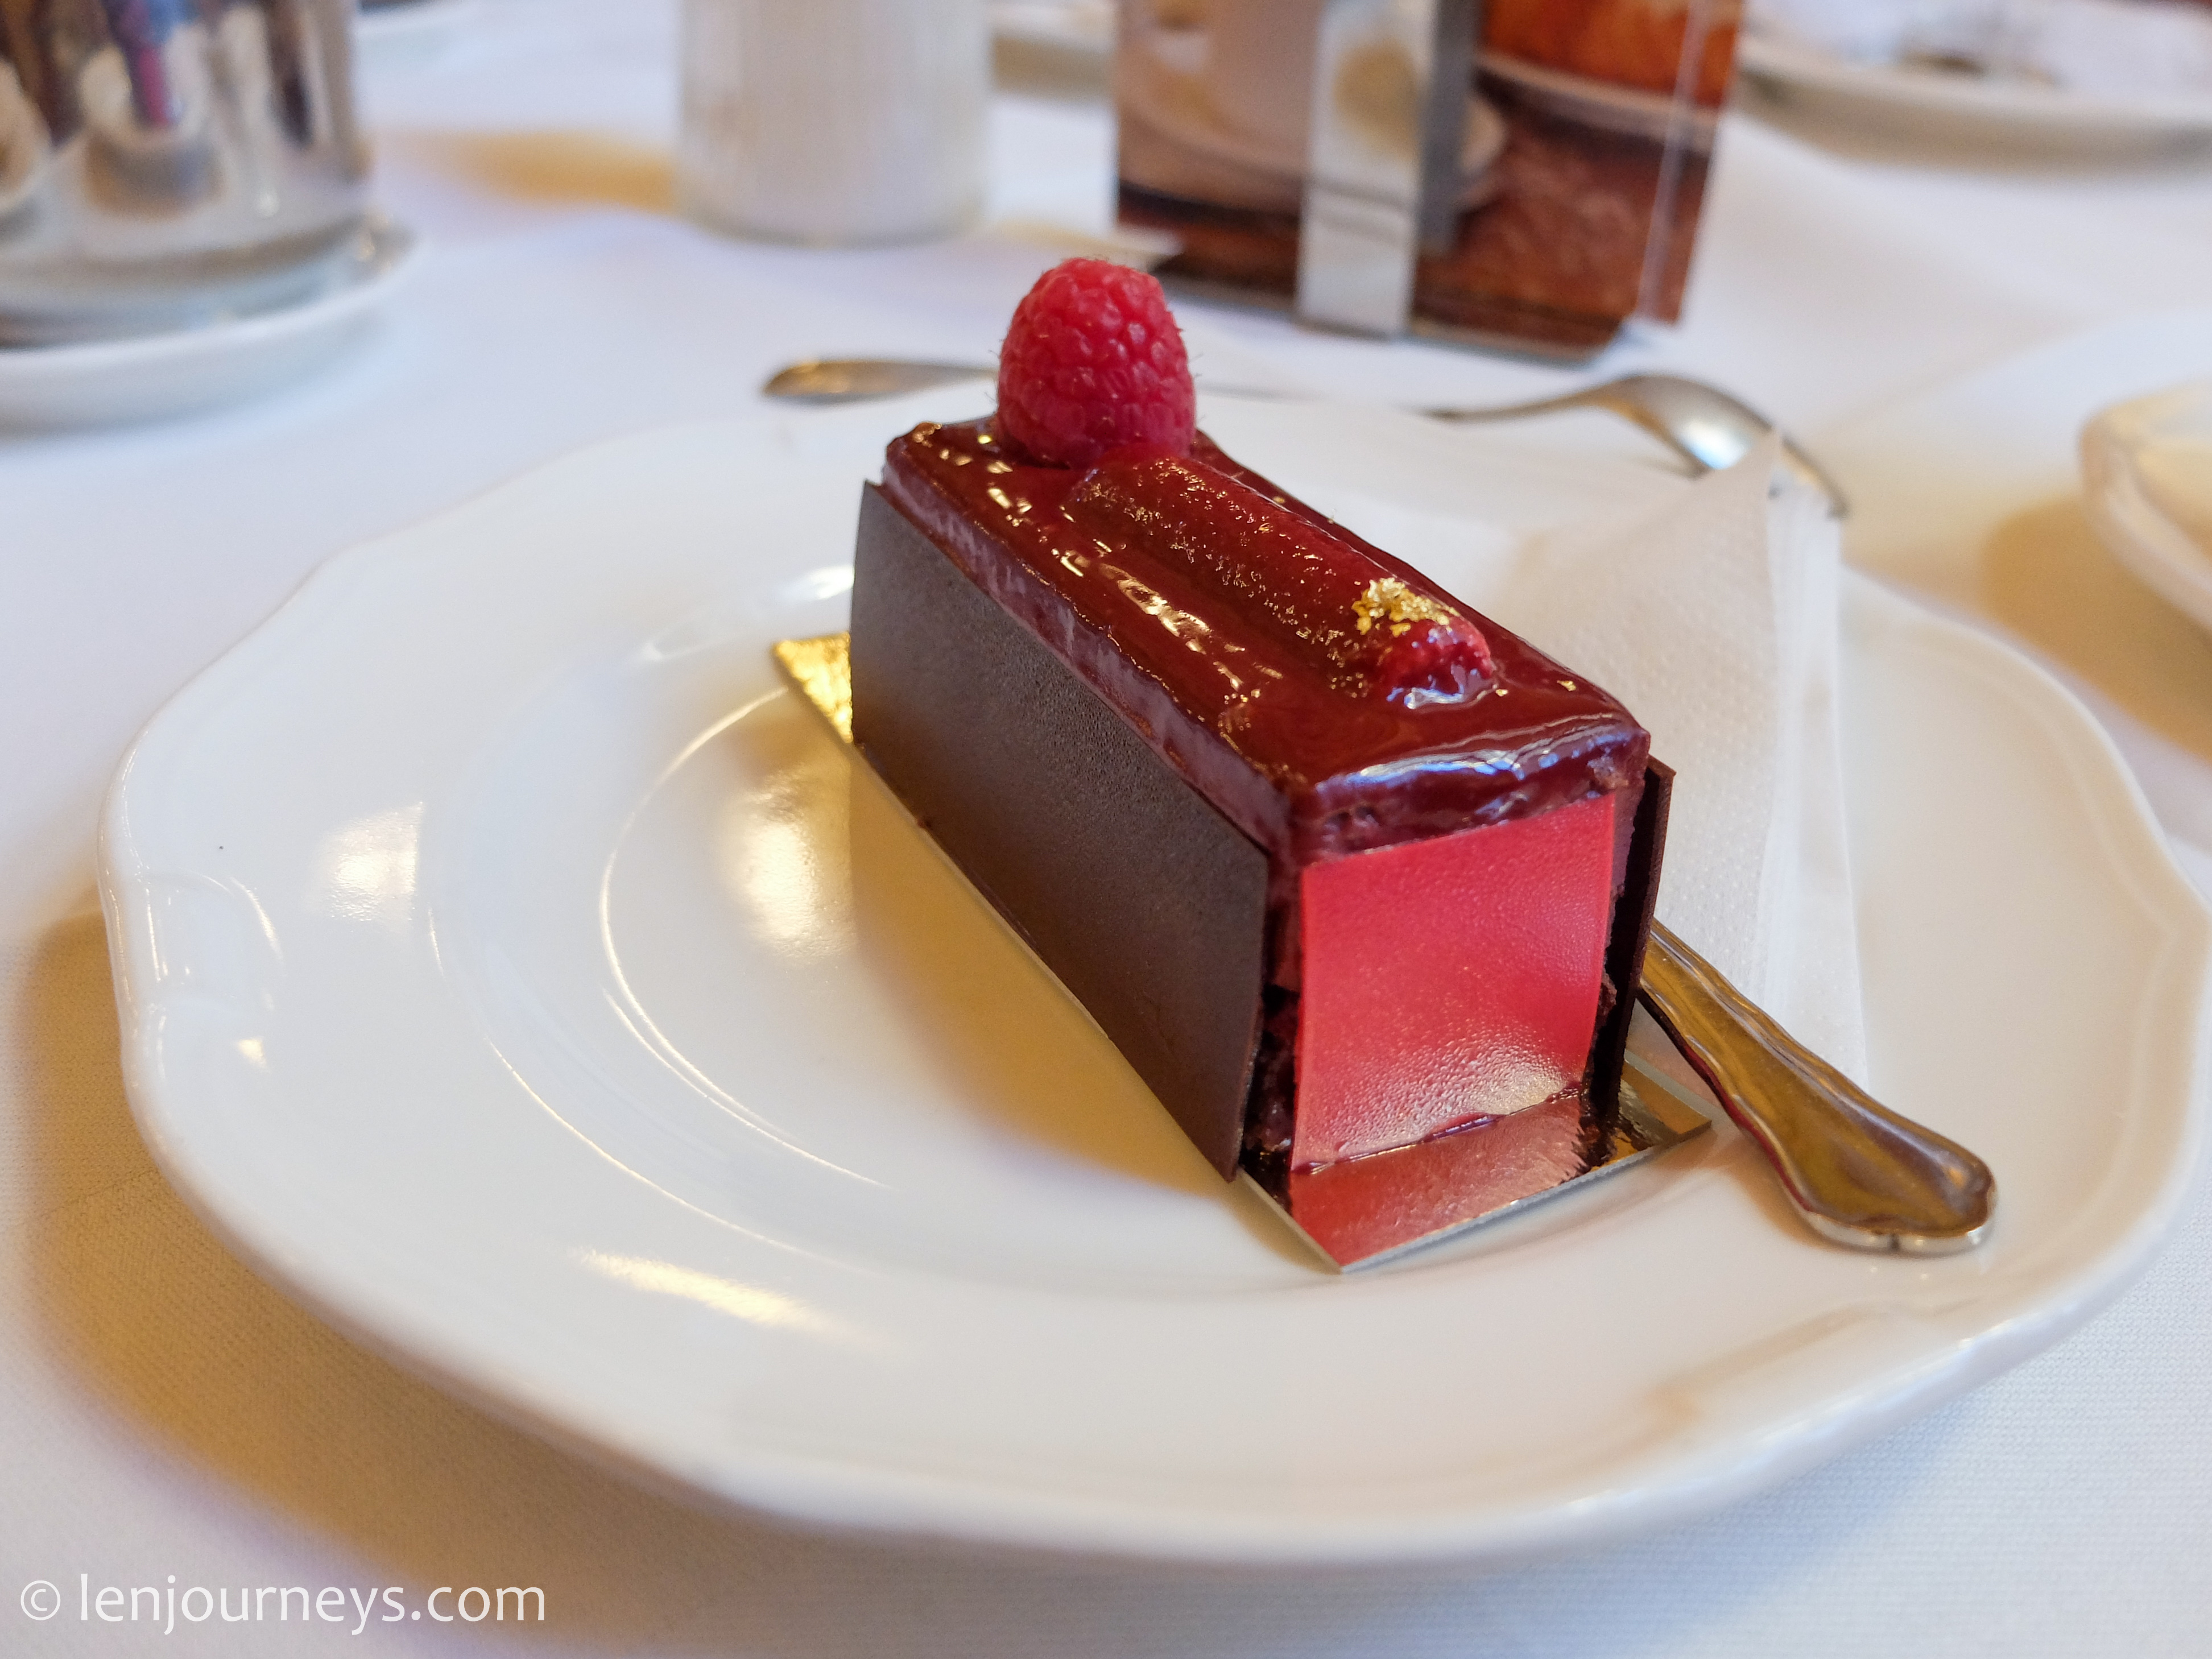 Raspberry Cake at Cafe Central